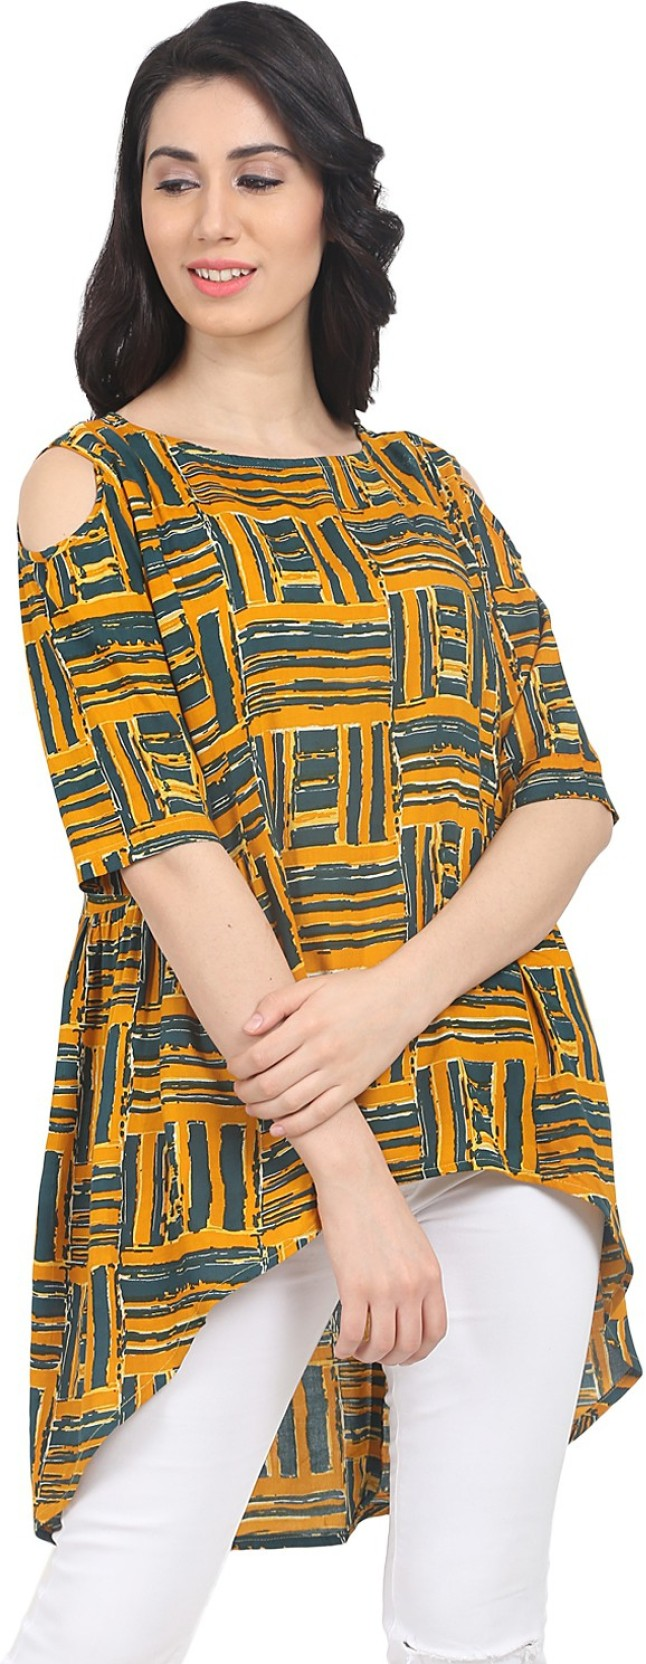 Daftar Harga Images Tagged With Missingafew On Instagram Termurah Valentino Rudy Vr103 1335 Jam Tangan Pria Black Nayo Casual Half Sleeve Printed Womens Yellow Top Buy Add